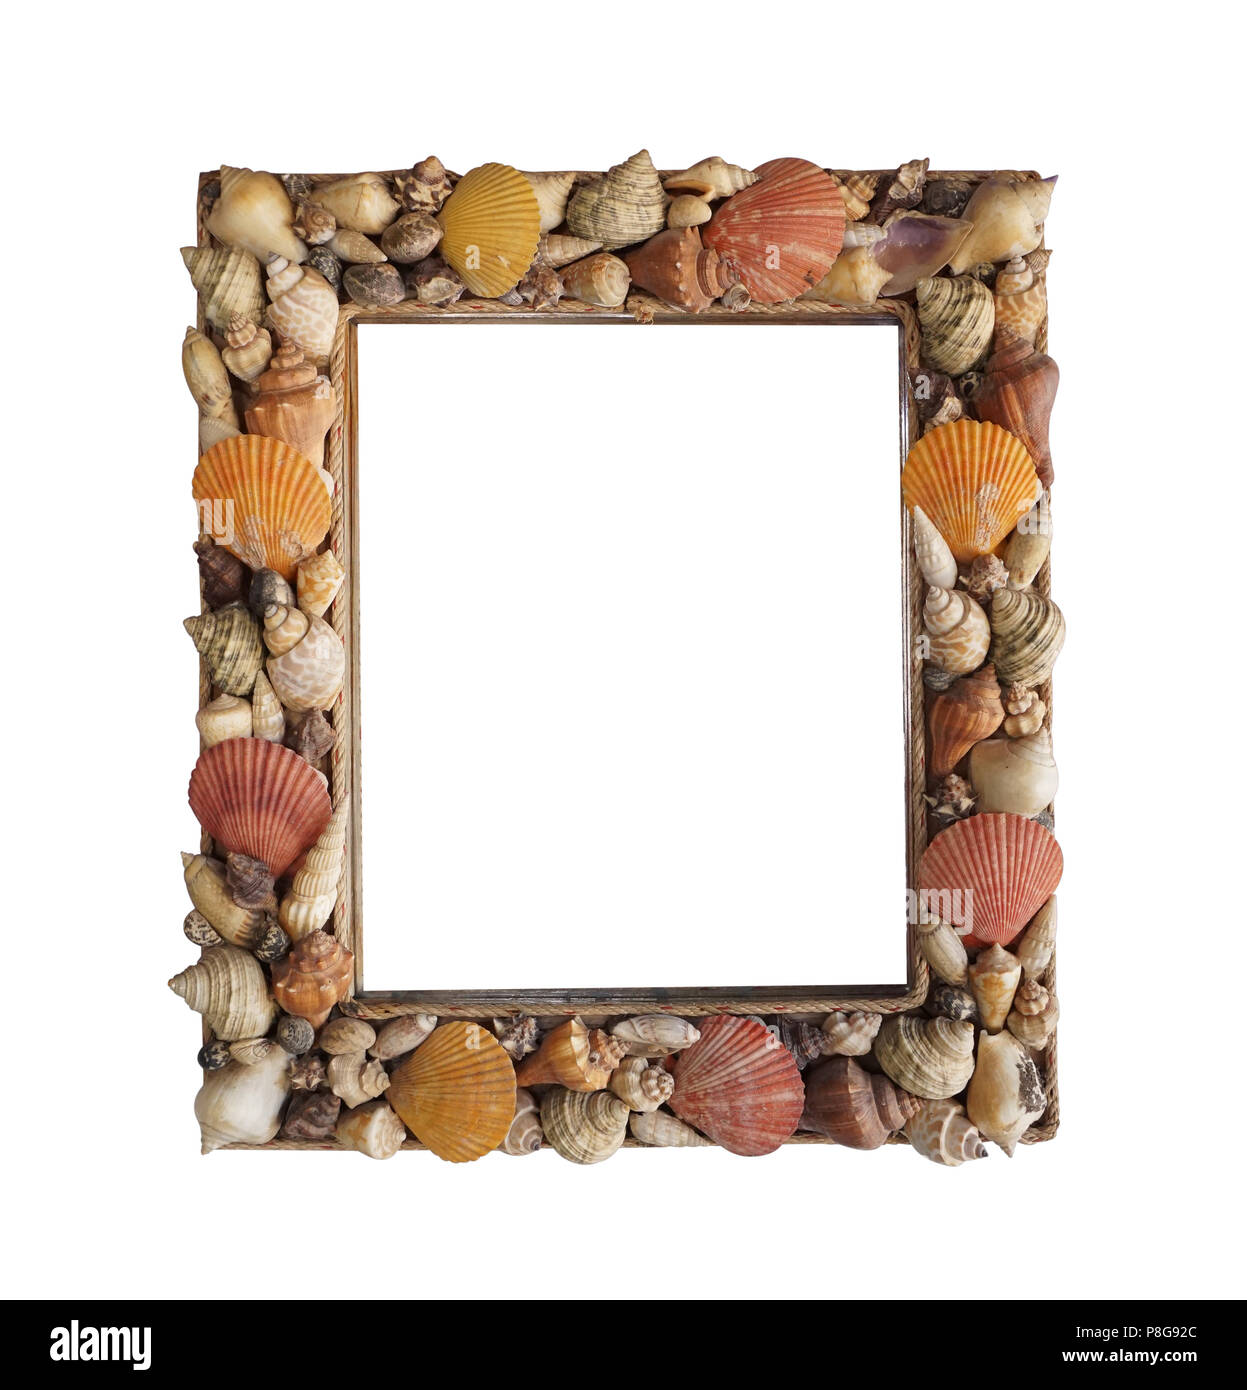 Letter made sea shells cut out stock images pictures alamy decorative photo frame made from different shells stock image spiritdancerdesigns Images